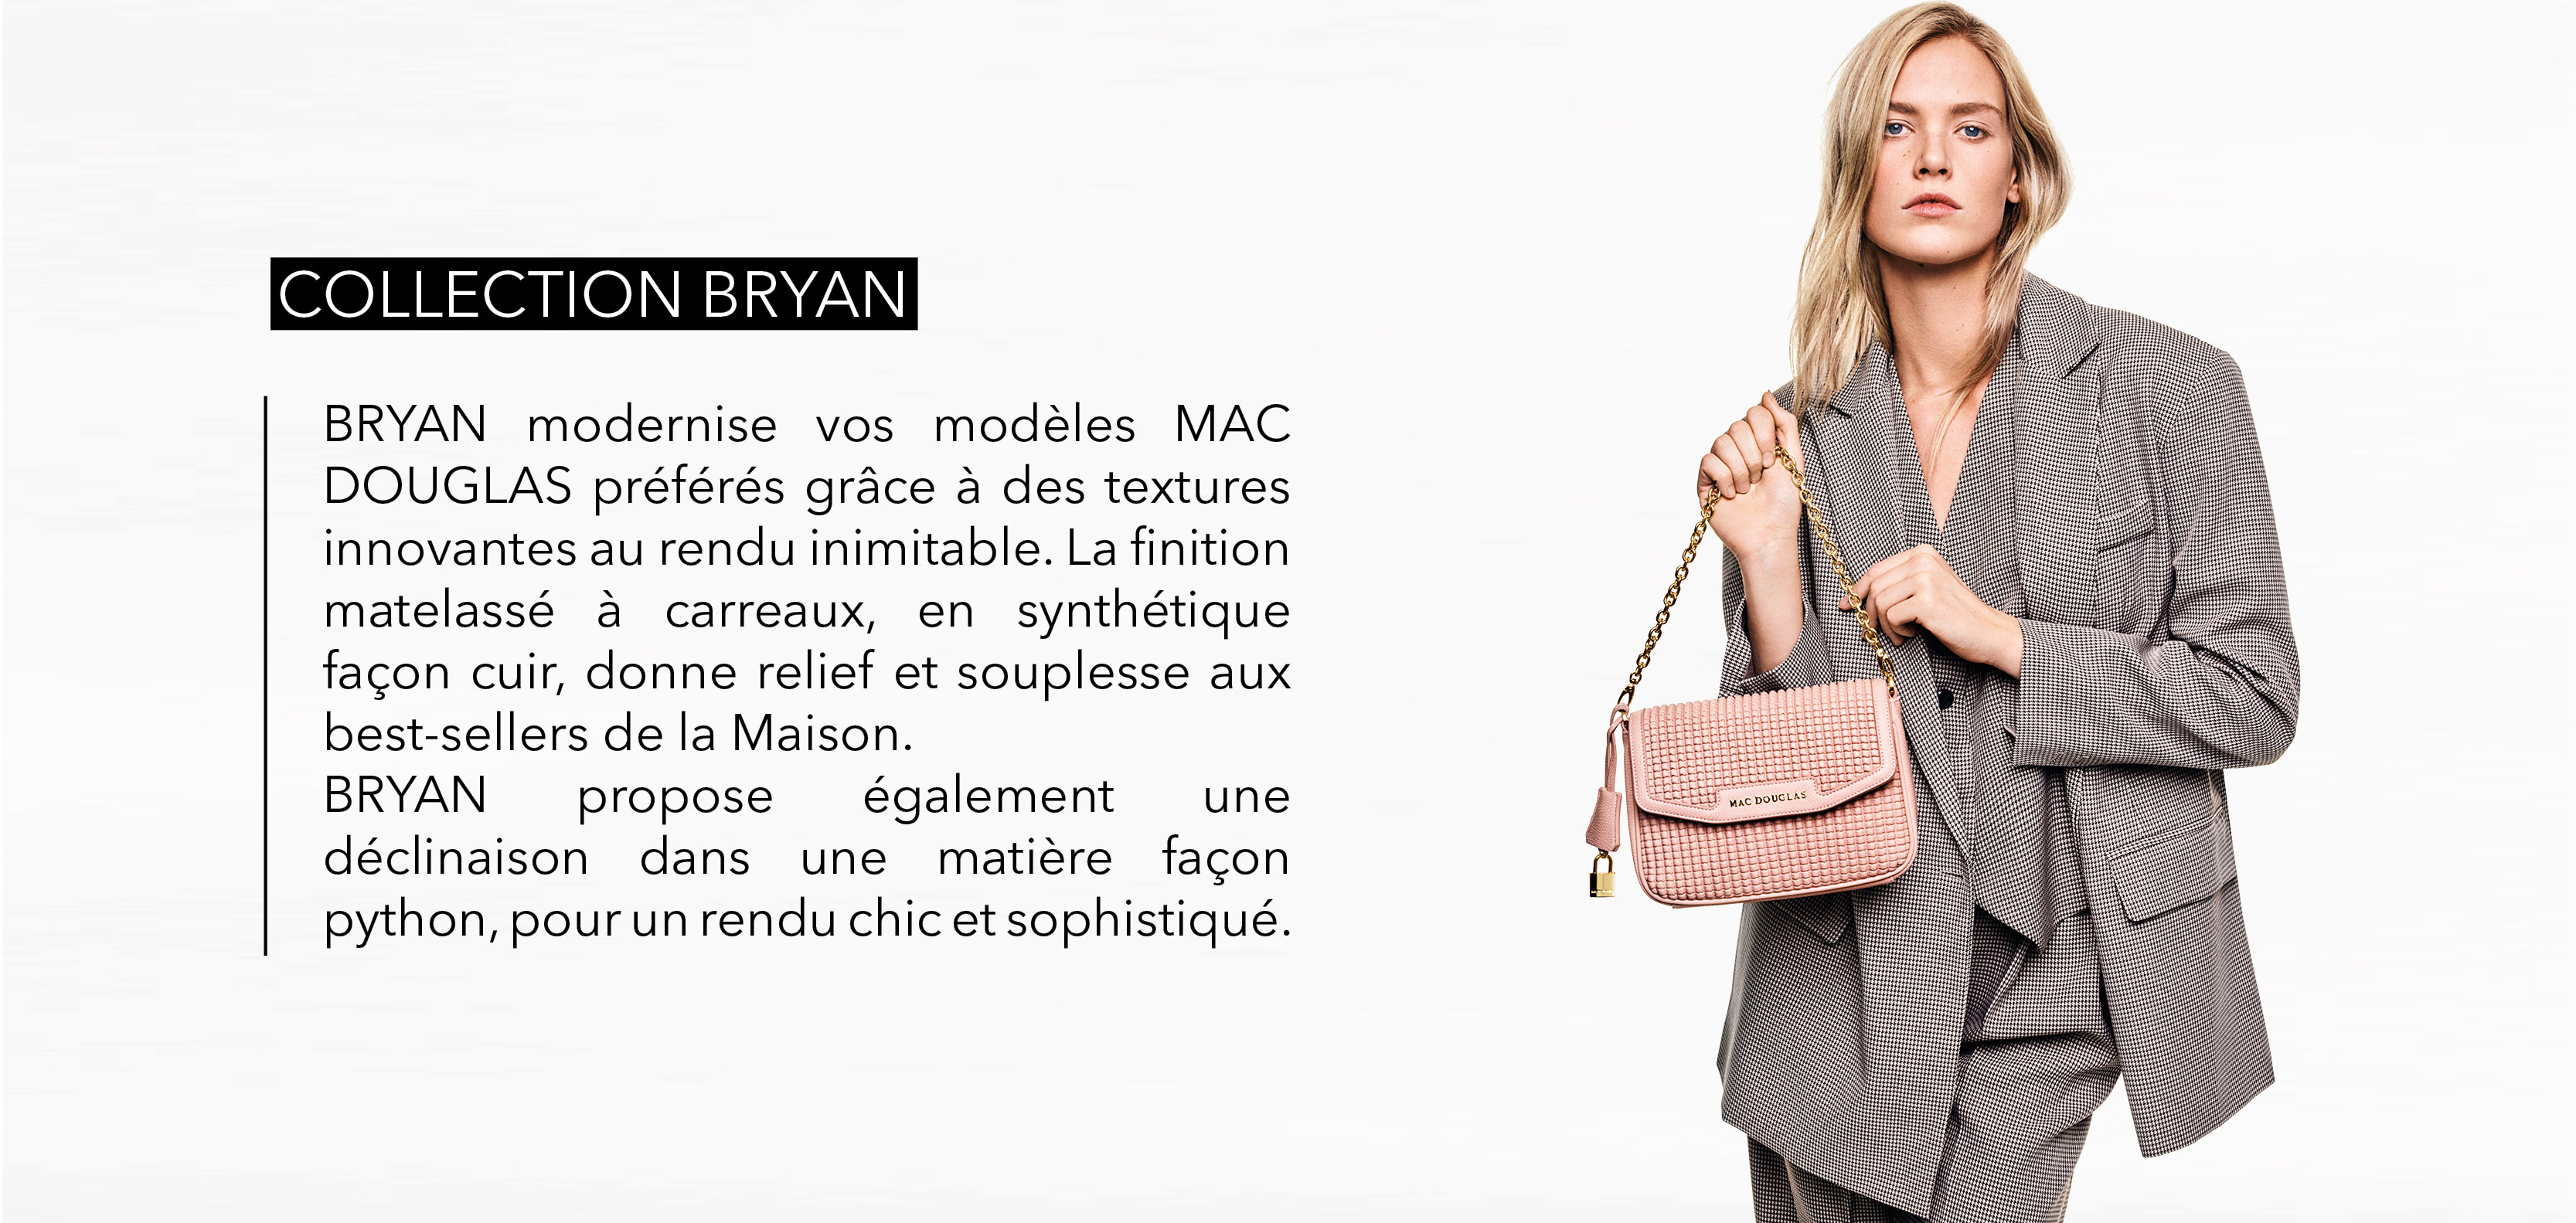 COLLECTION BRYAN